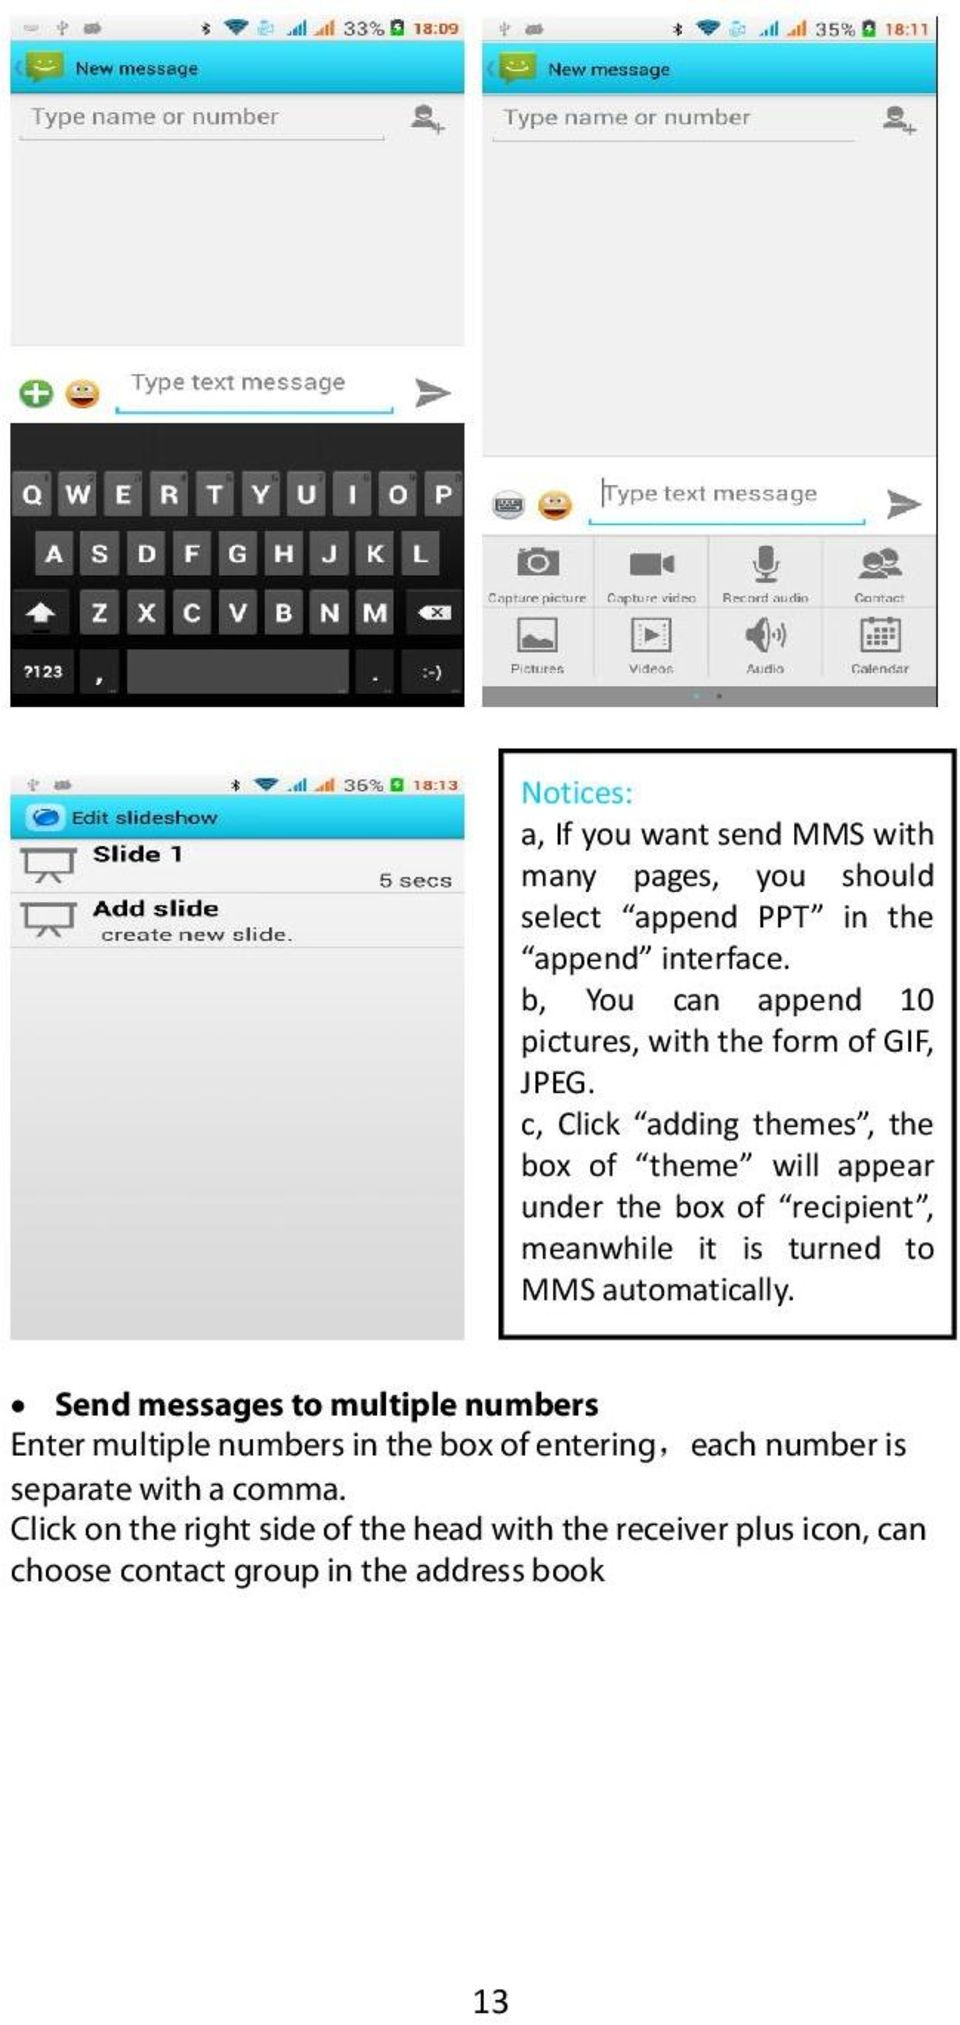 c, Click adding themes, the box of theme will appear under the box of recipient, meanwhile it is turned to MMS automatically.